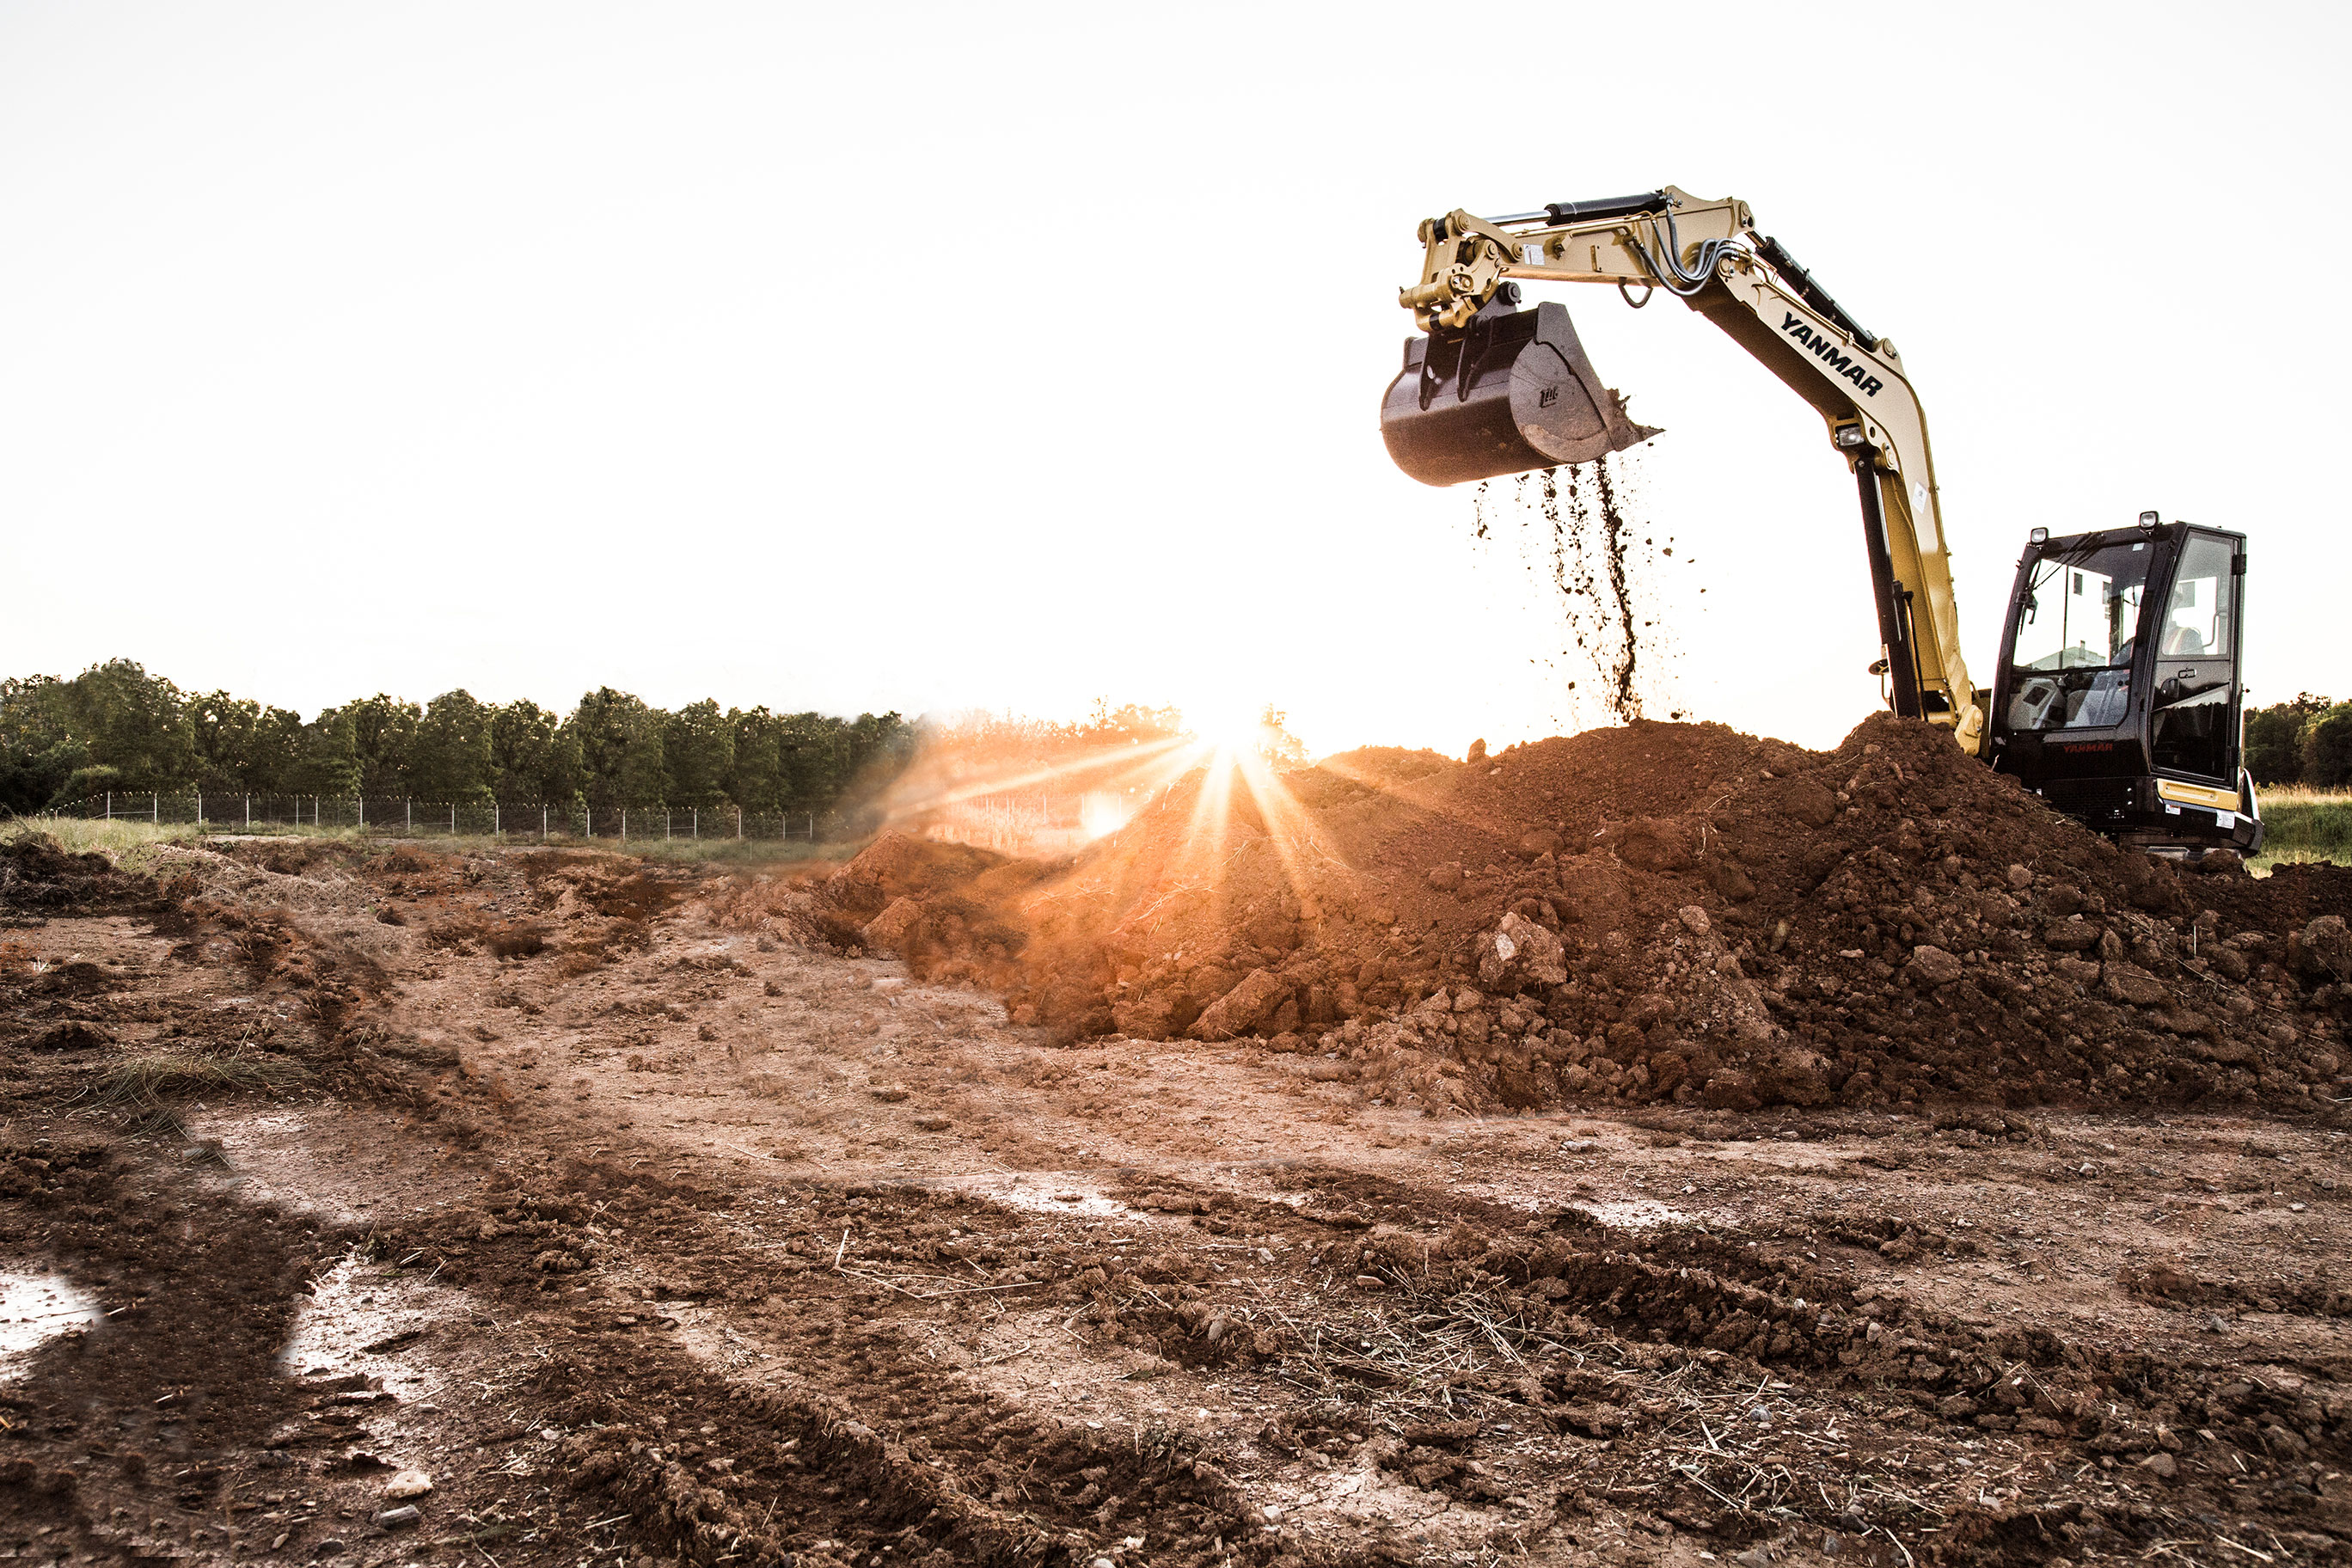 Yanmar CE Excavator - Make the switch today!